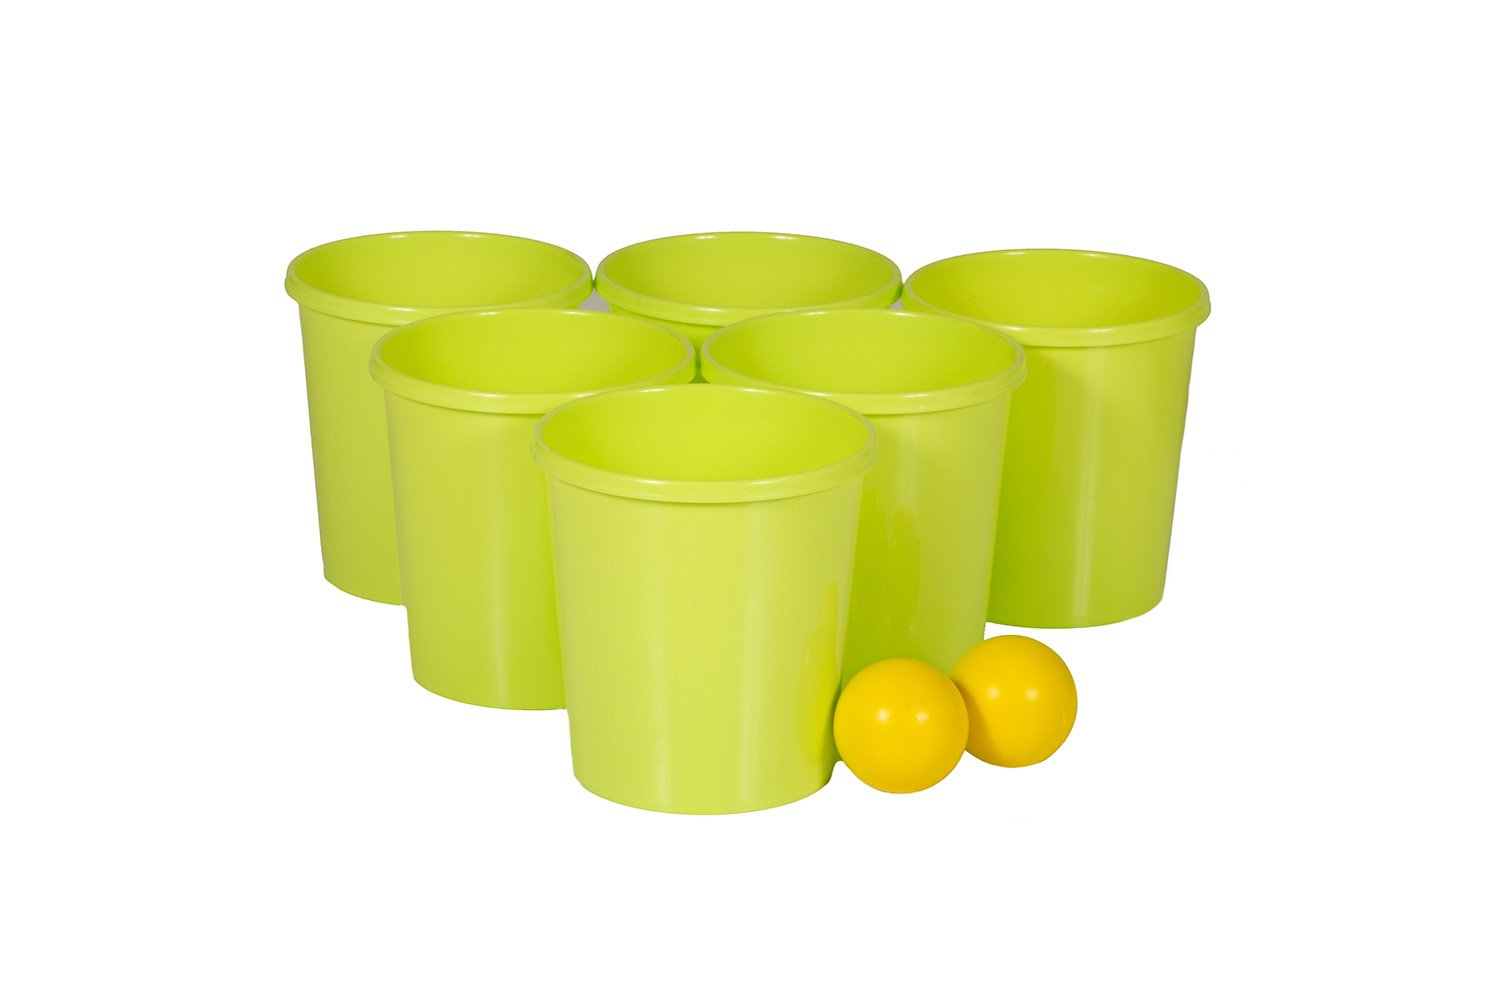 Get Out! Patio Pong – Giant Yard Beer Pong Set for Outdoor Fun – 12 Buckets, 2 Balls, 1 Drawstring Carrying Bag by Get Out! (Image #4)